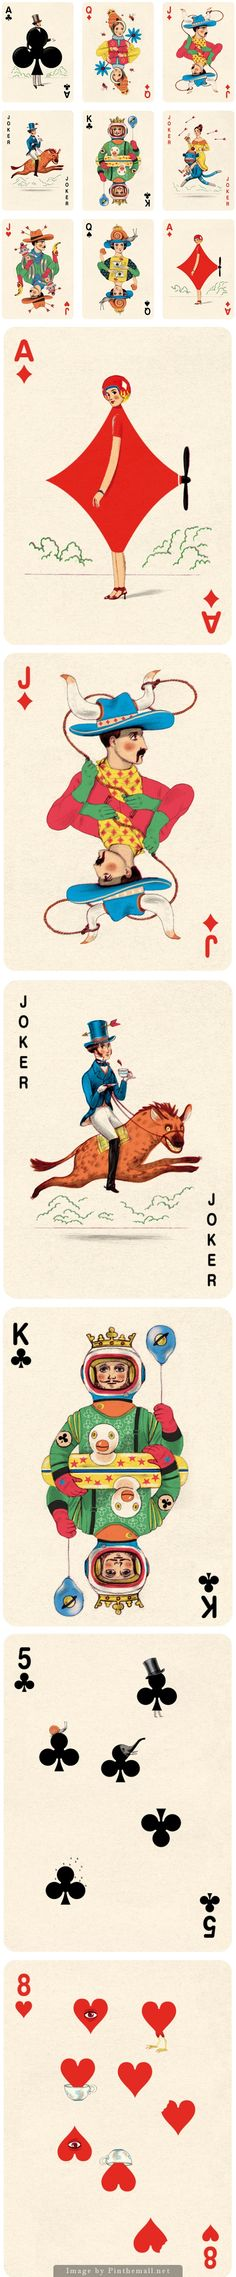 Playing Cards Illustrations by Jonathan Burton   -este vendría siendo mi pin favorito del 2015-